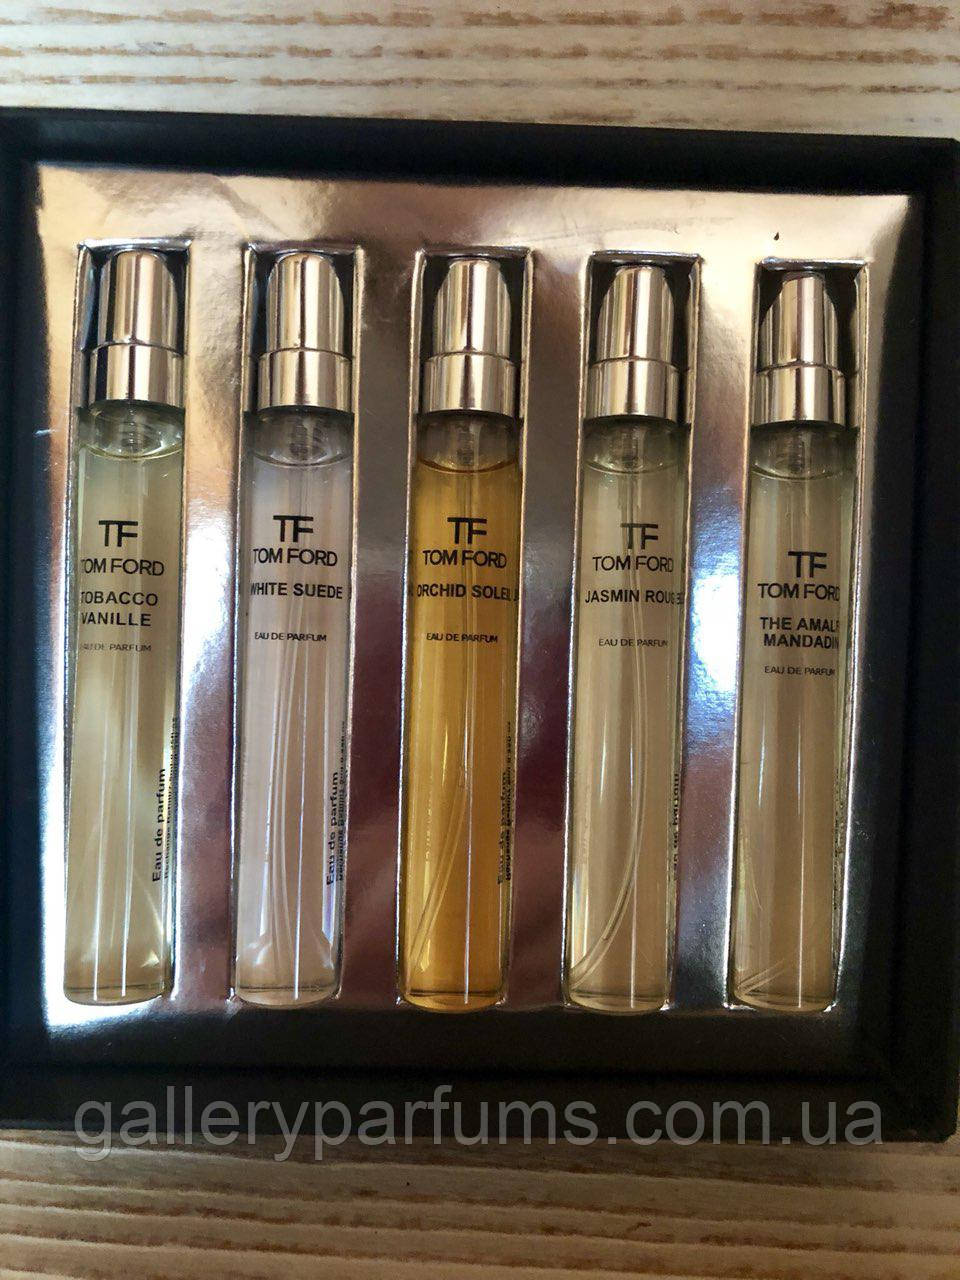 набор Tom Ford Tobacco Vanille White Suede Orchid Soleil Jasmin Rouge The Amalfi Mandadin 5 75 Ml